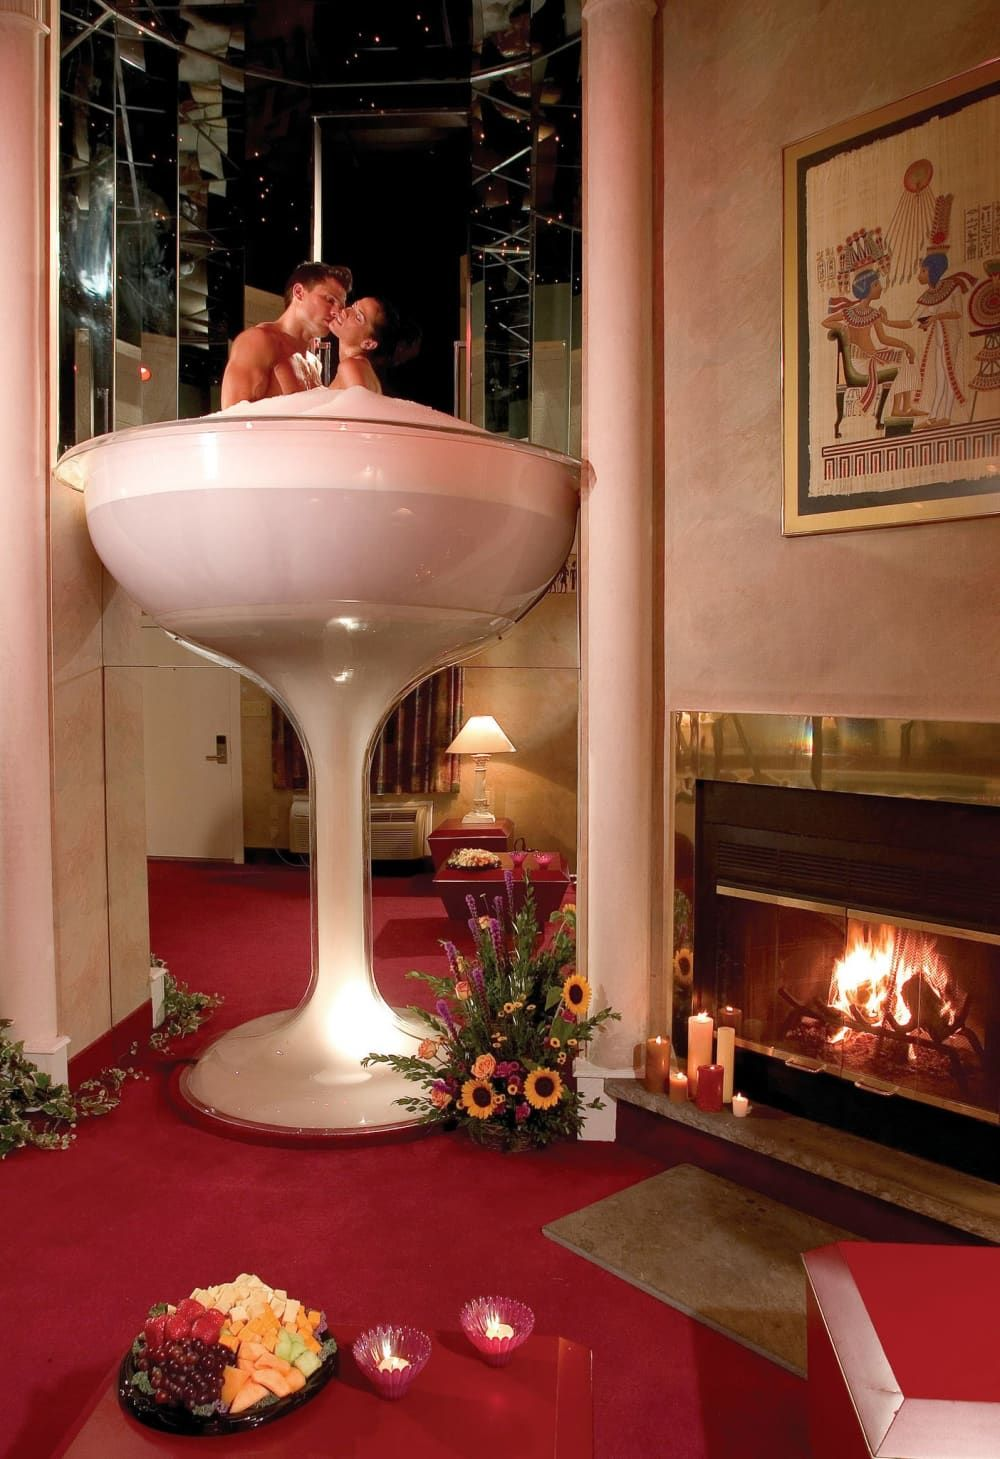 The Rise And Fall Of The Heart Shaped Hot Tub Glass Tub Romantic Getaways All Inclusive Honeymoon